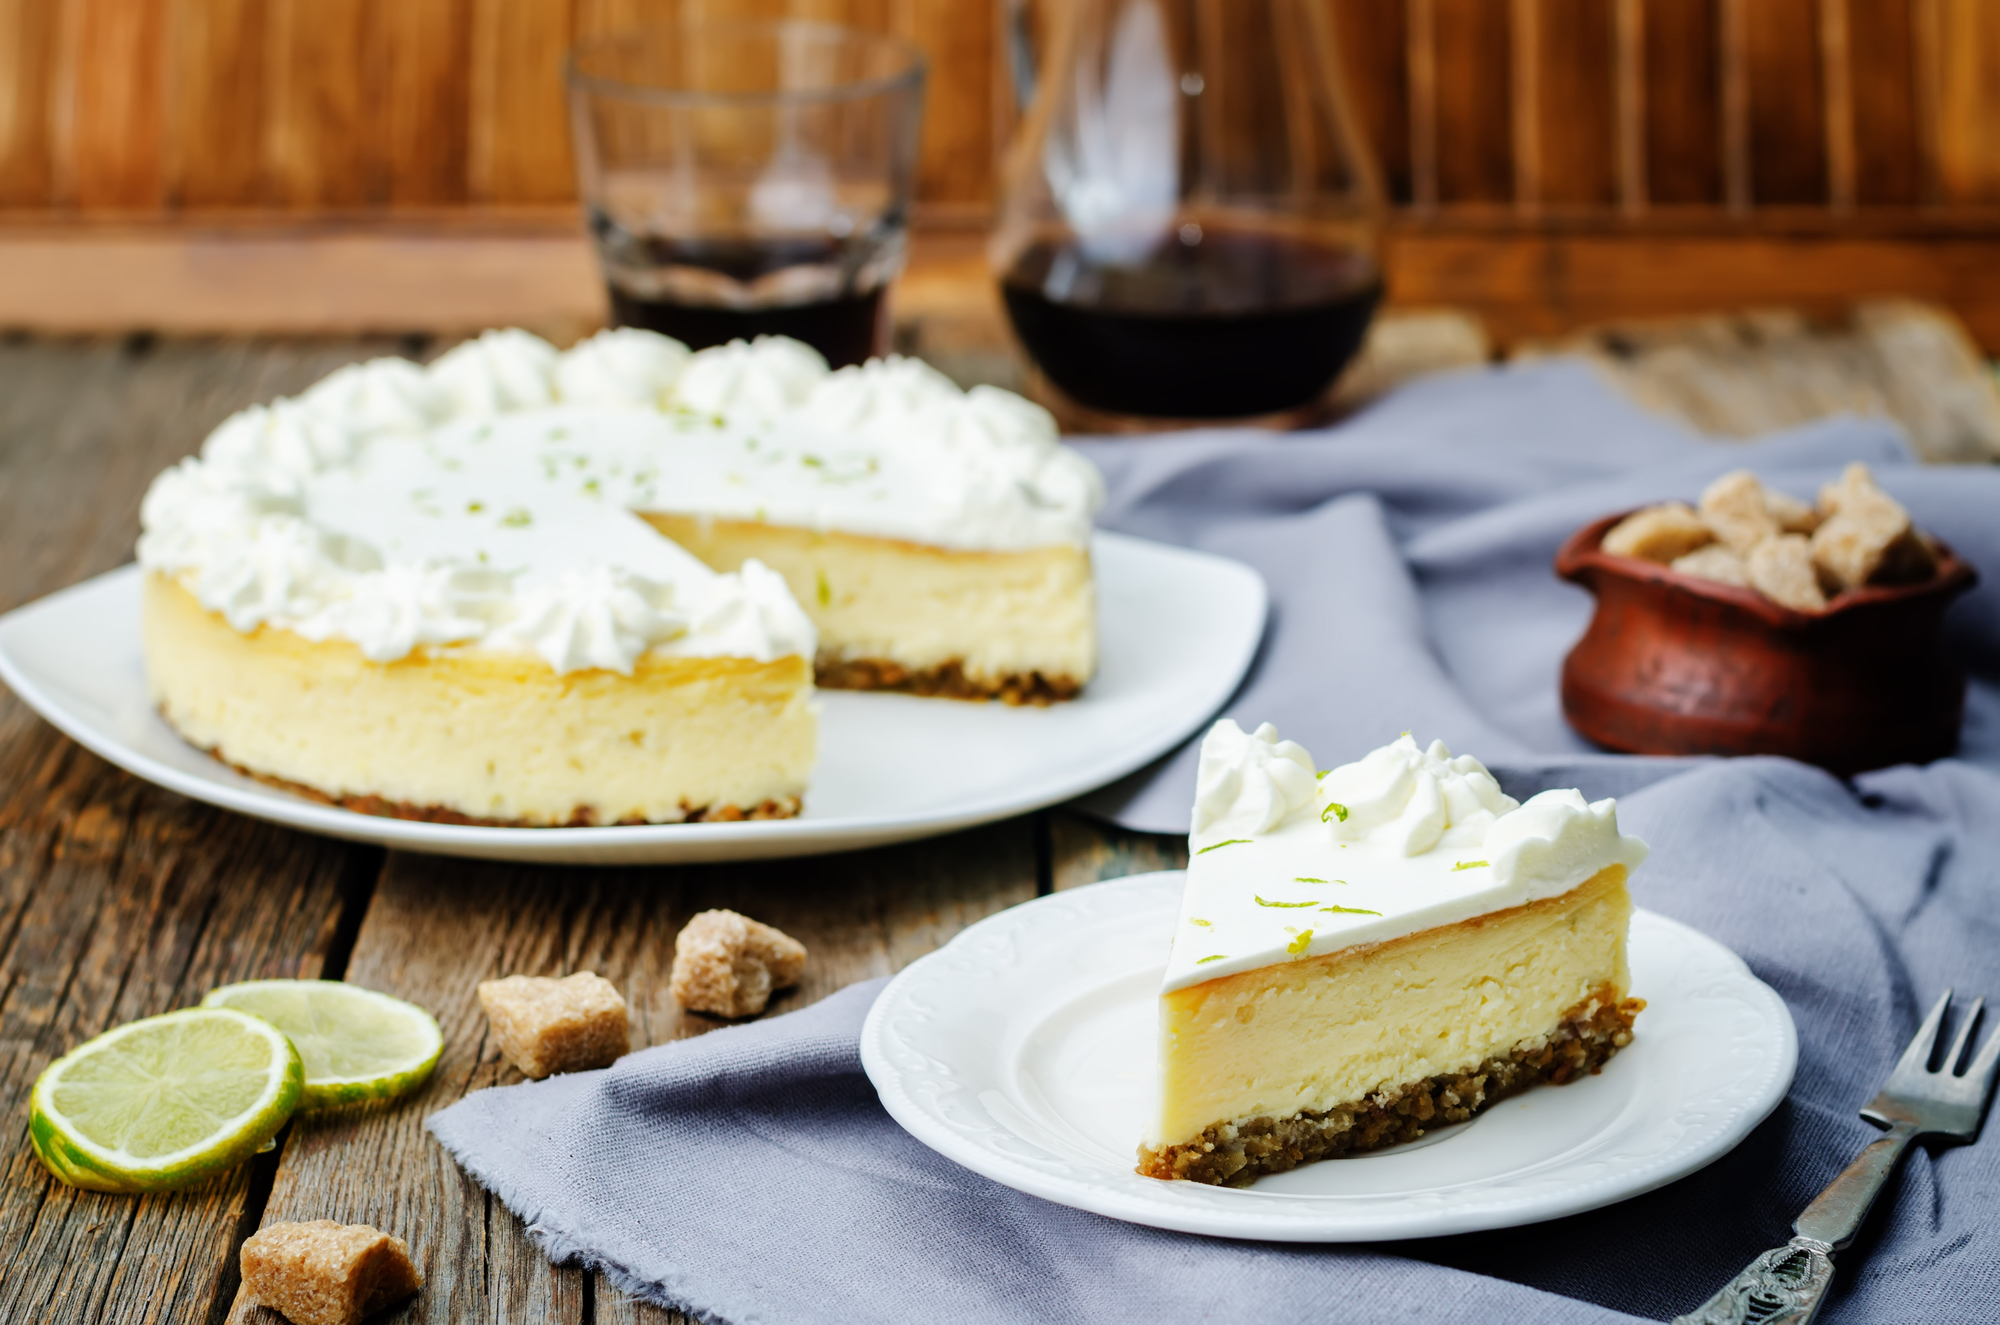 7-Ingredient Coconut Lime Cheesecake vegan gluten free dairy free recipe